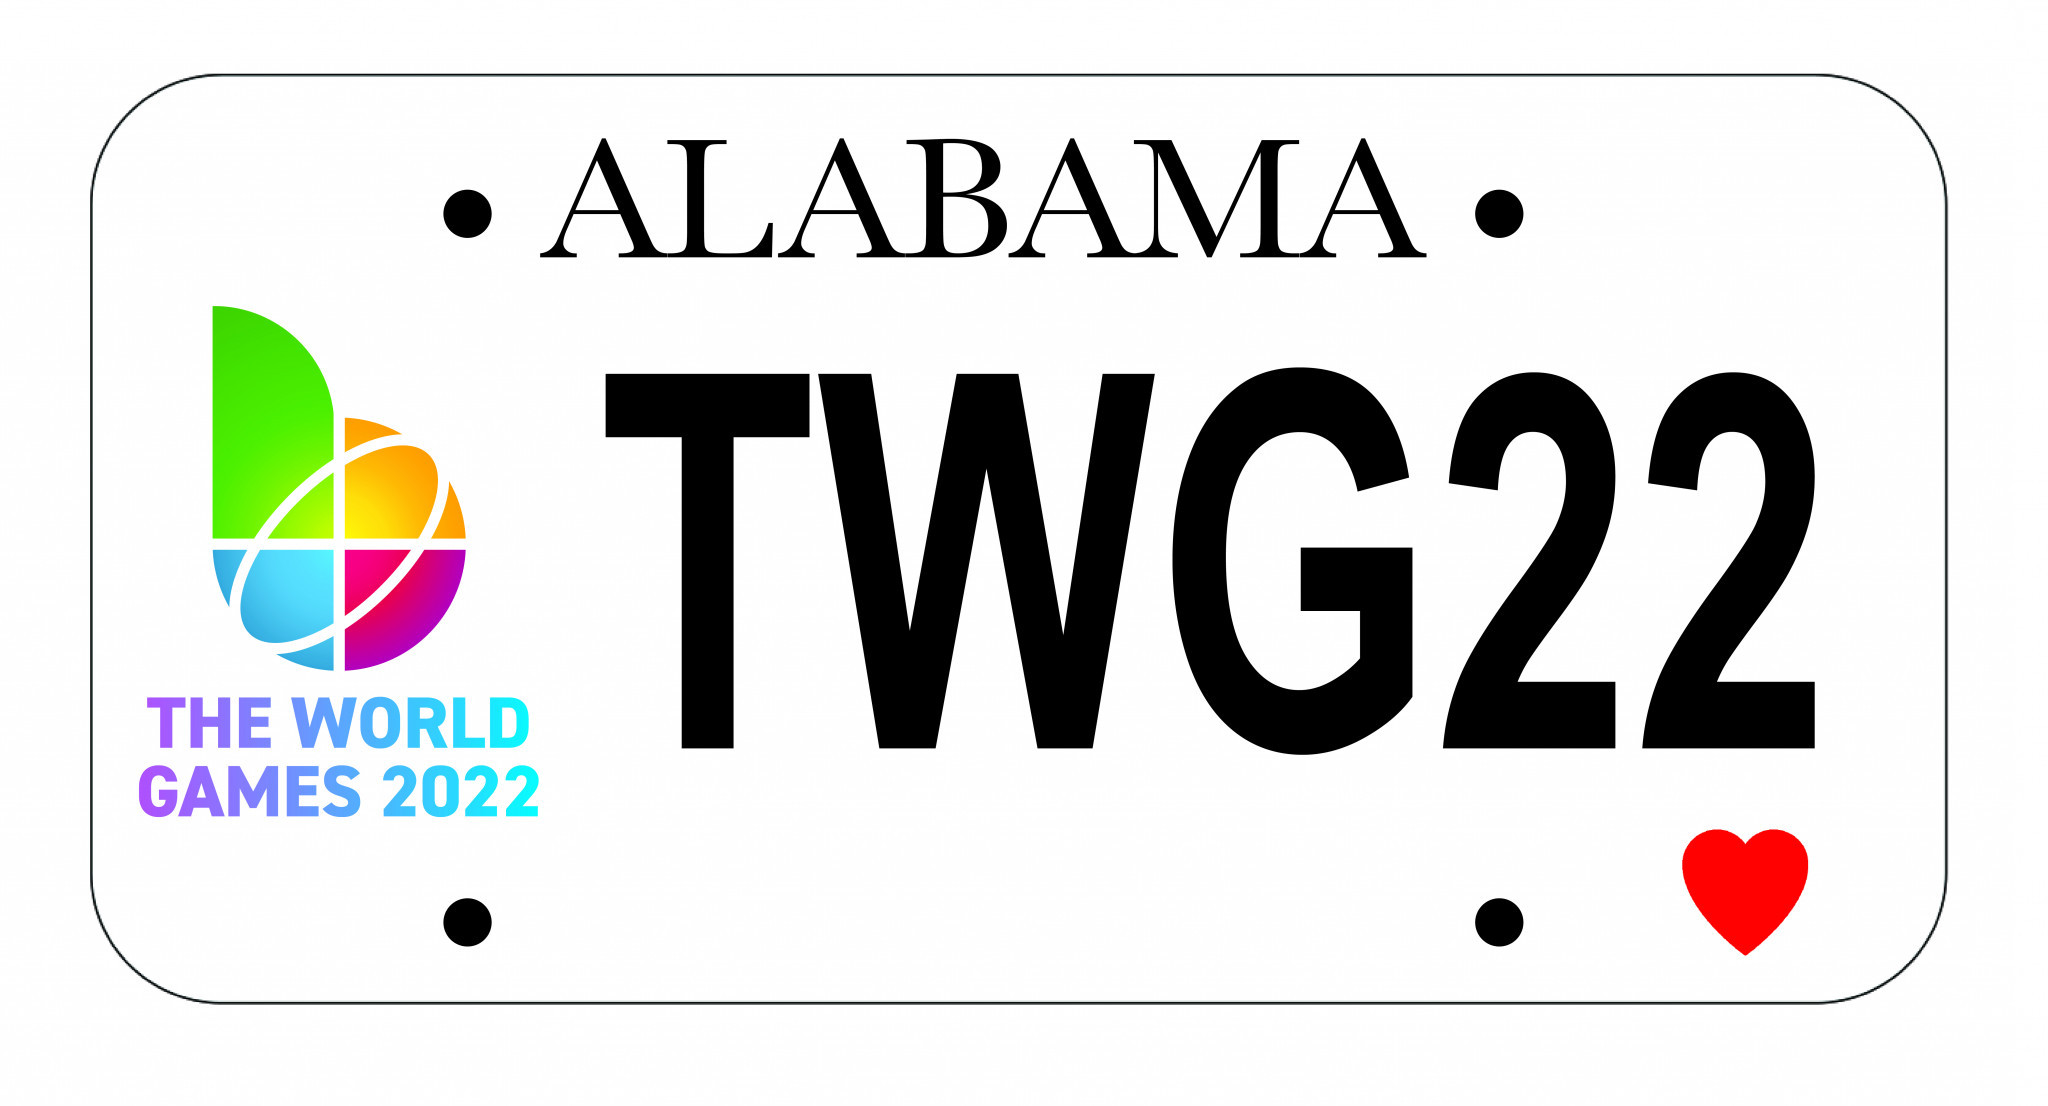 World Games 2022 releases special license plates